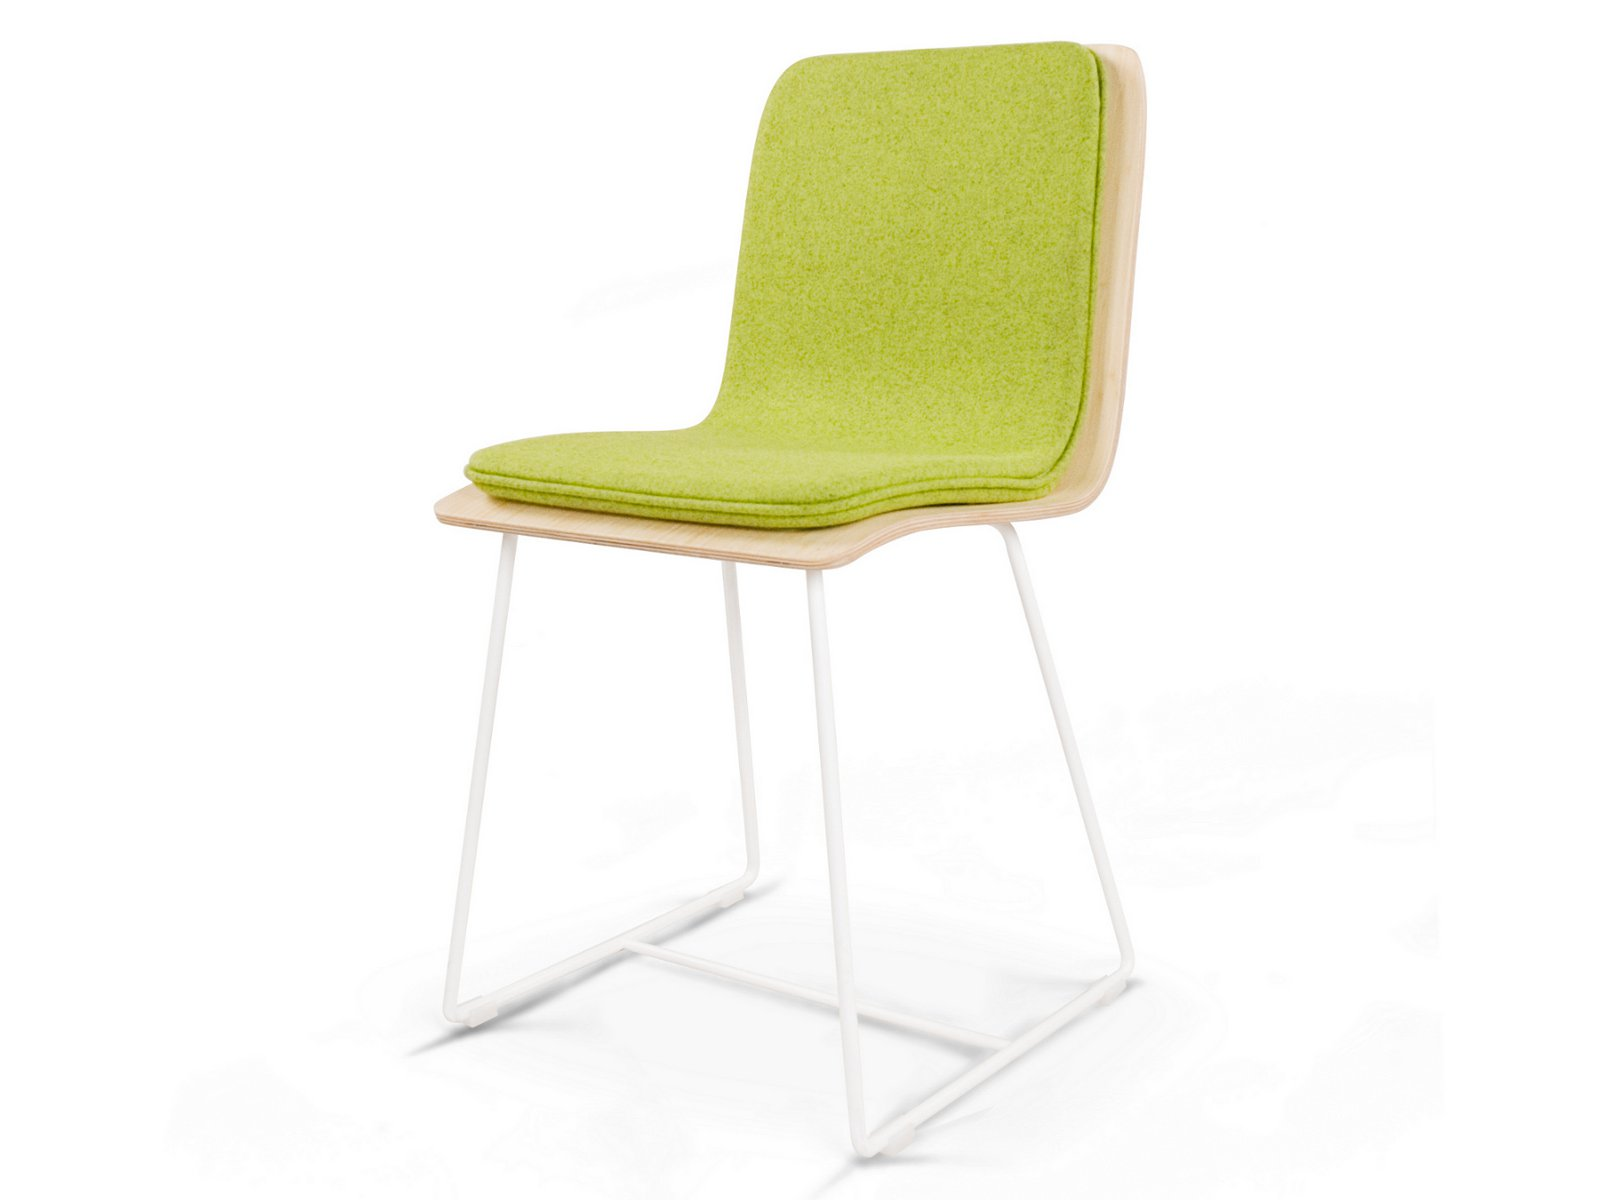 BEE Chair by La Maison Turrini design Fritsch-Durisotti